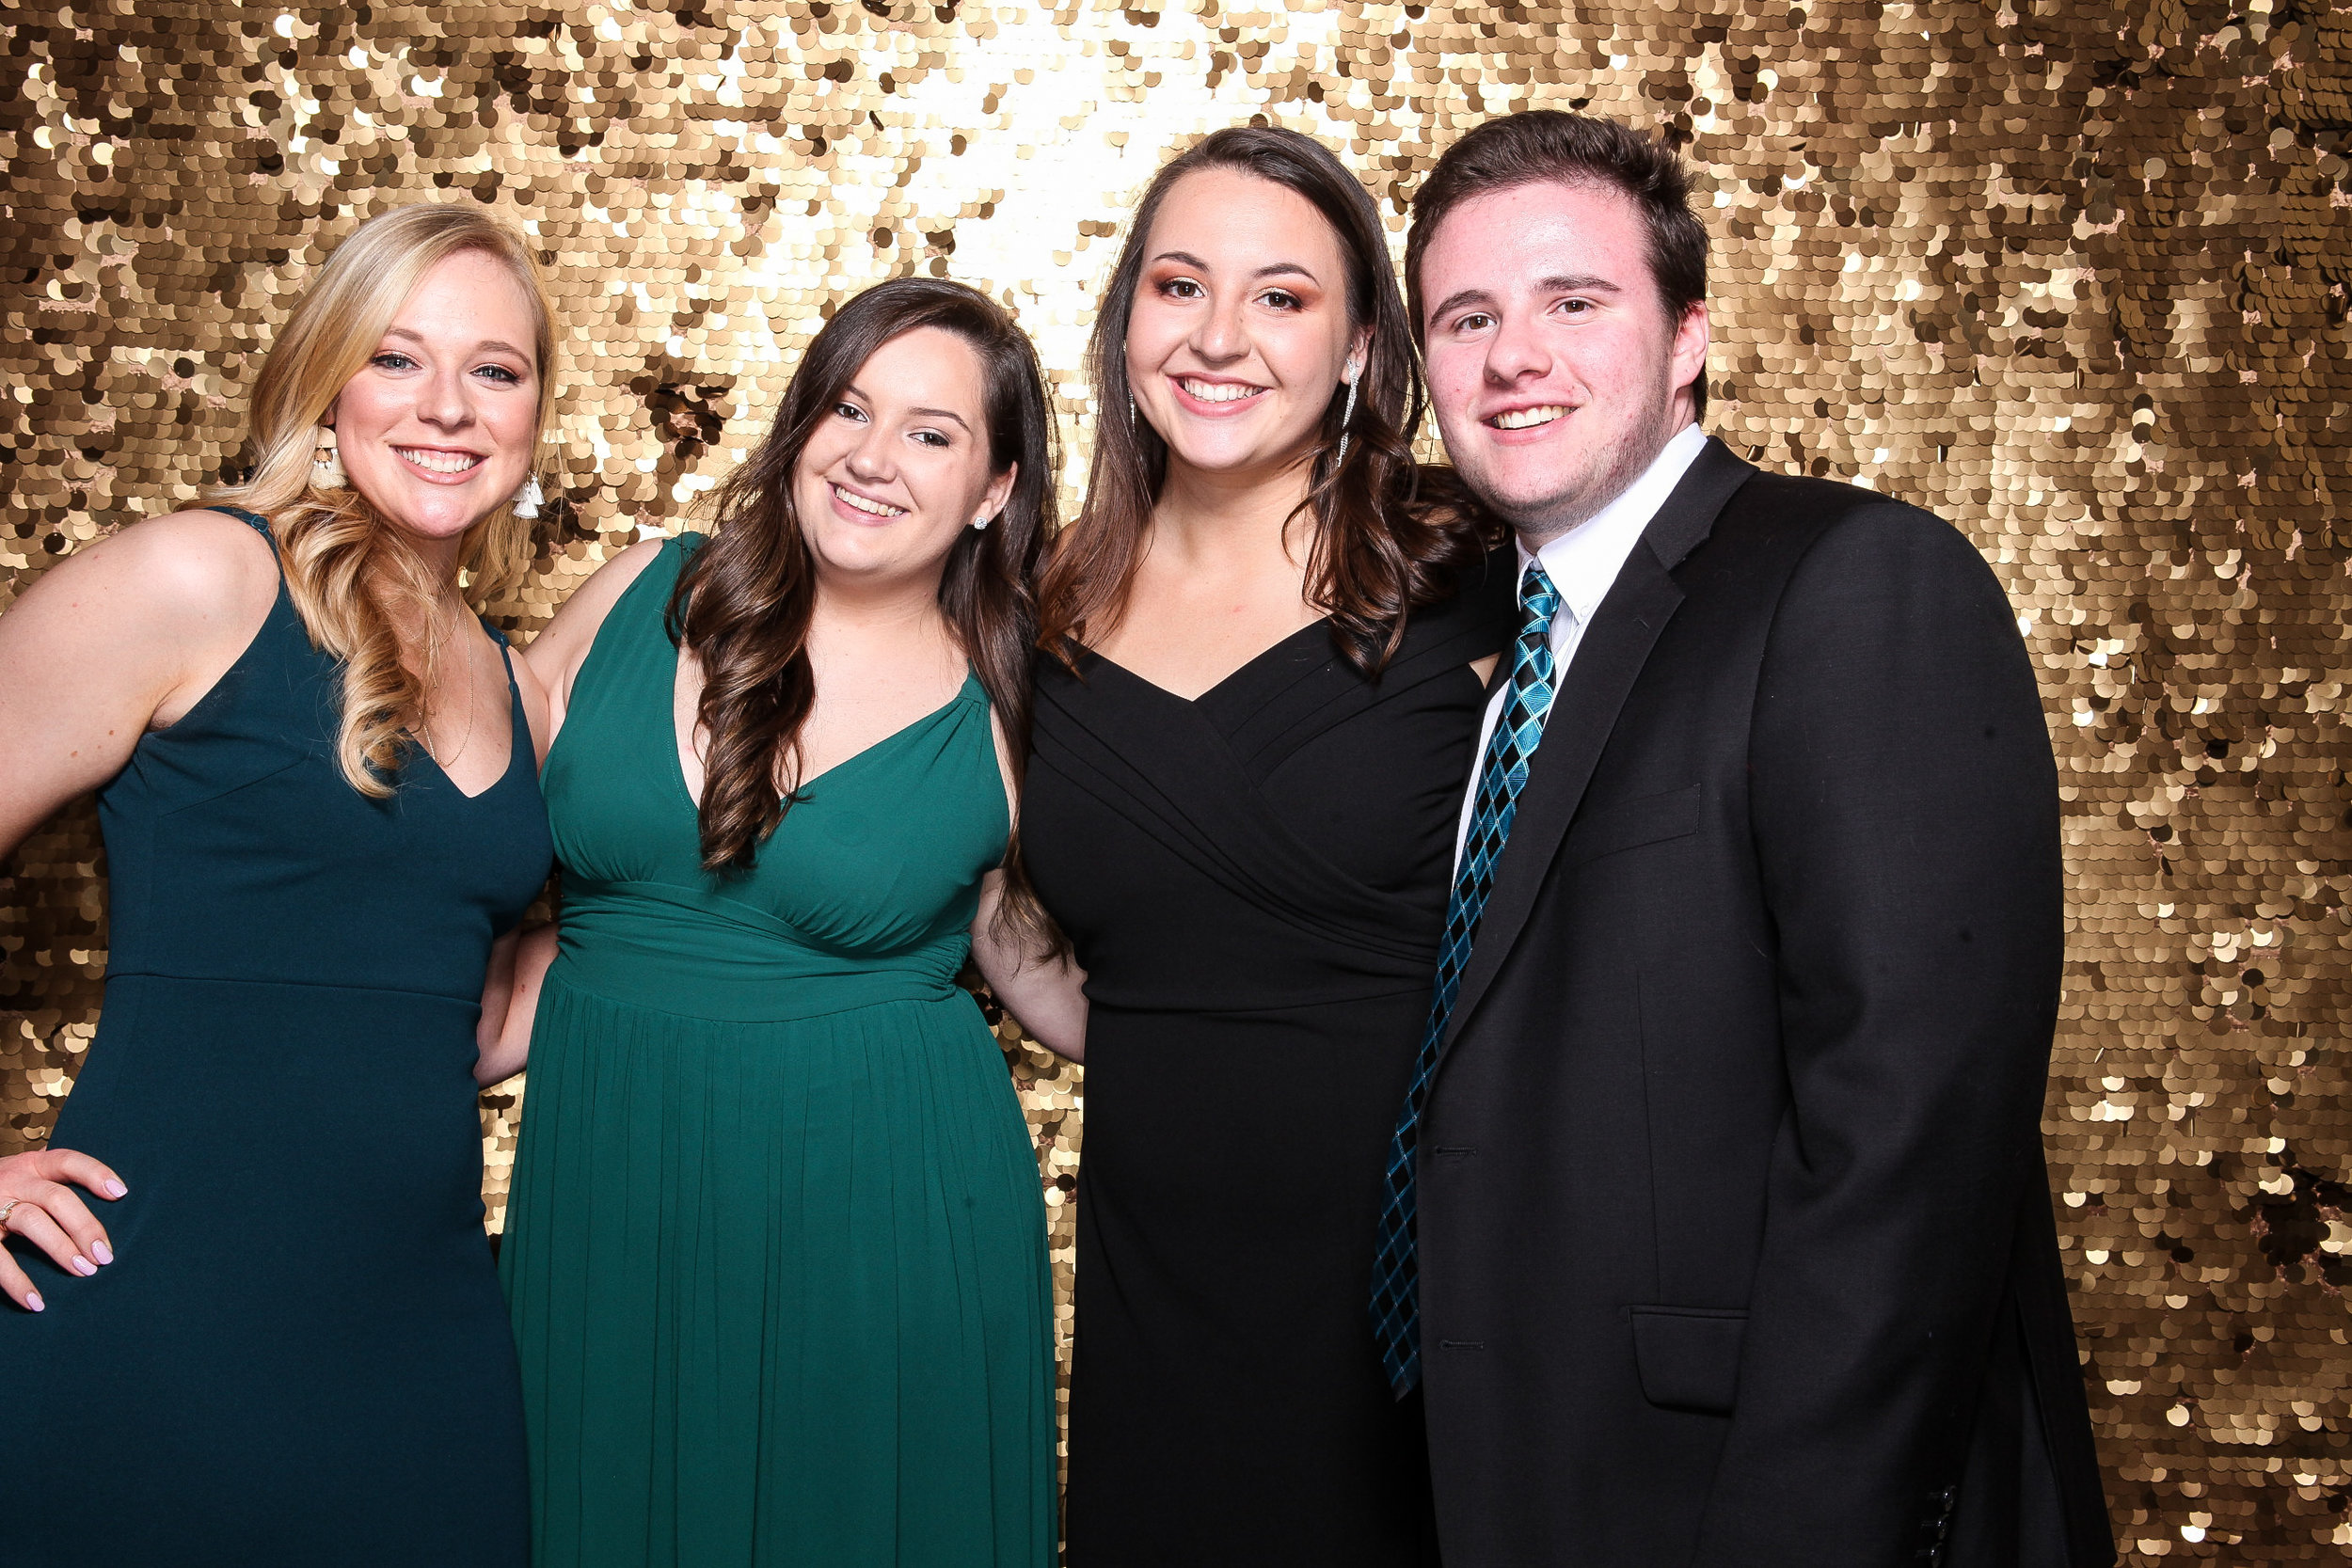 20190503_Adelphi_Senior_Formal-059.jpg